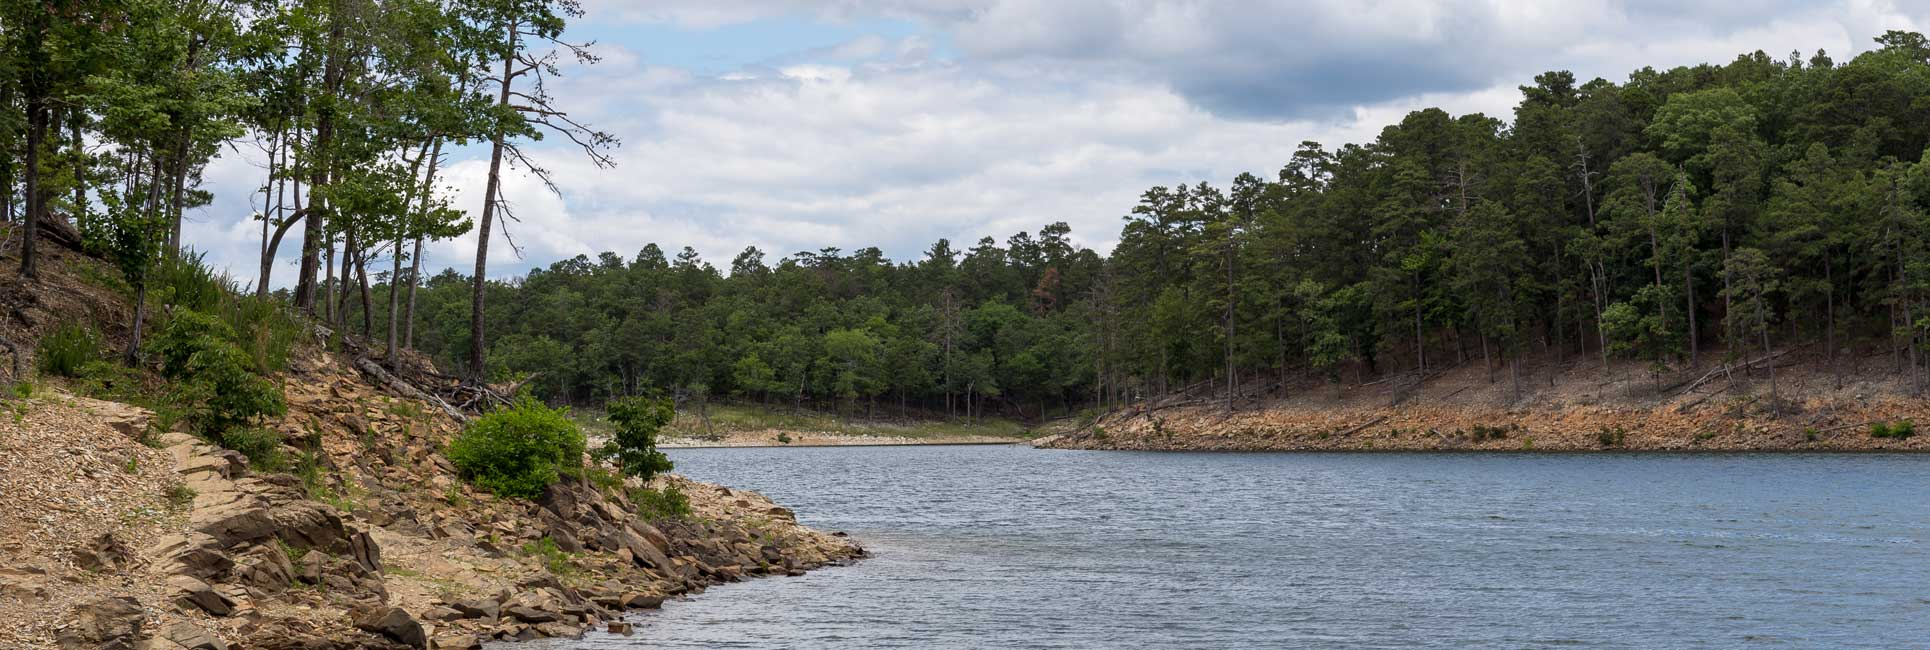 A river winding through some trees near Broken Bow, OK